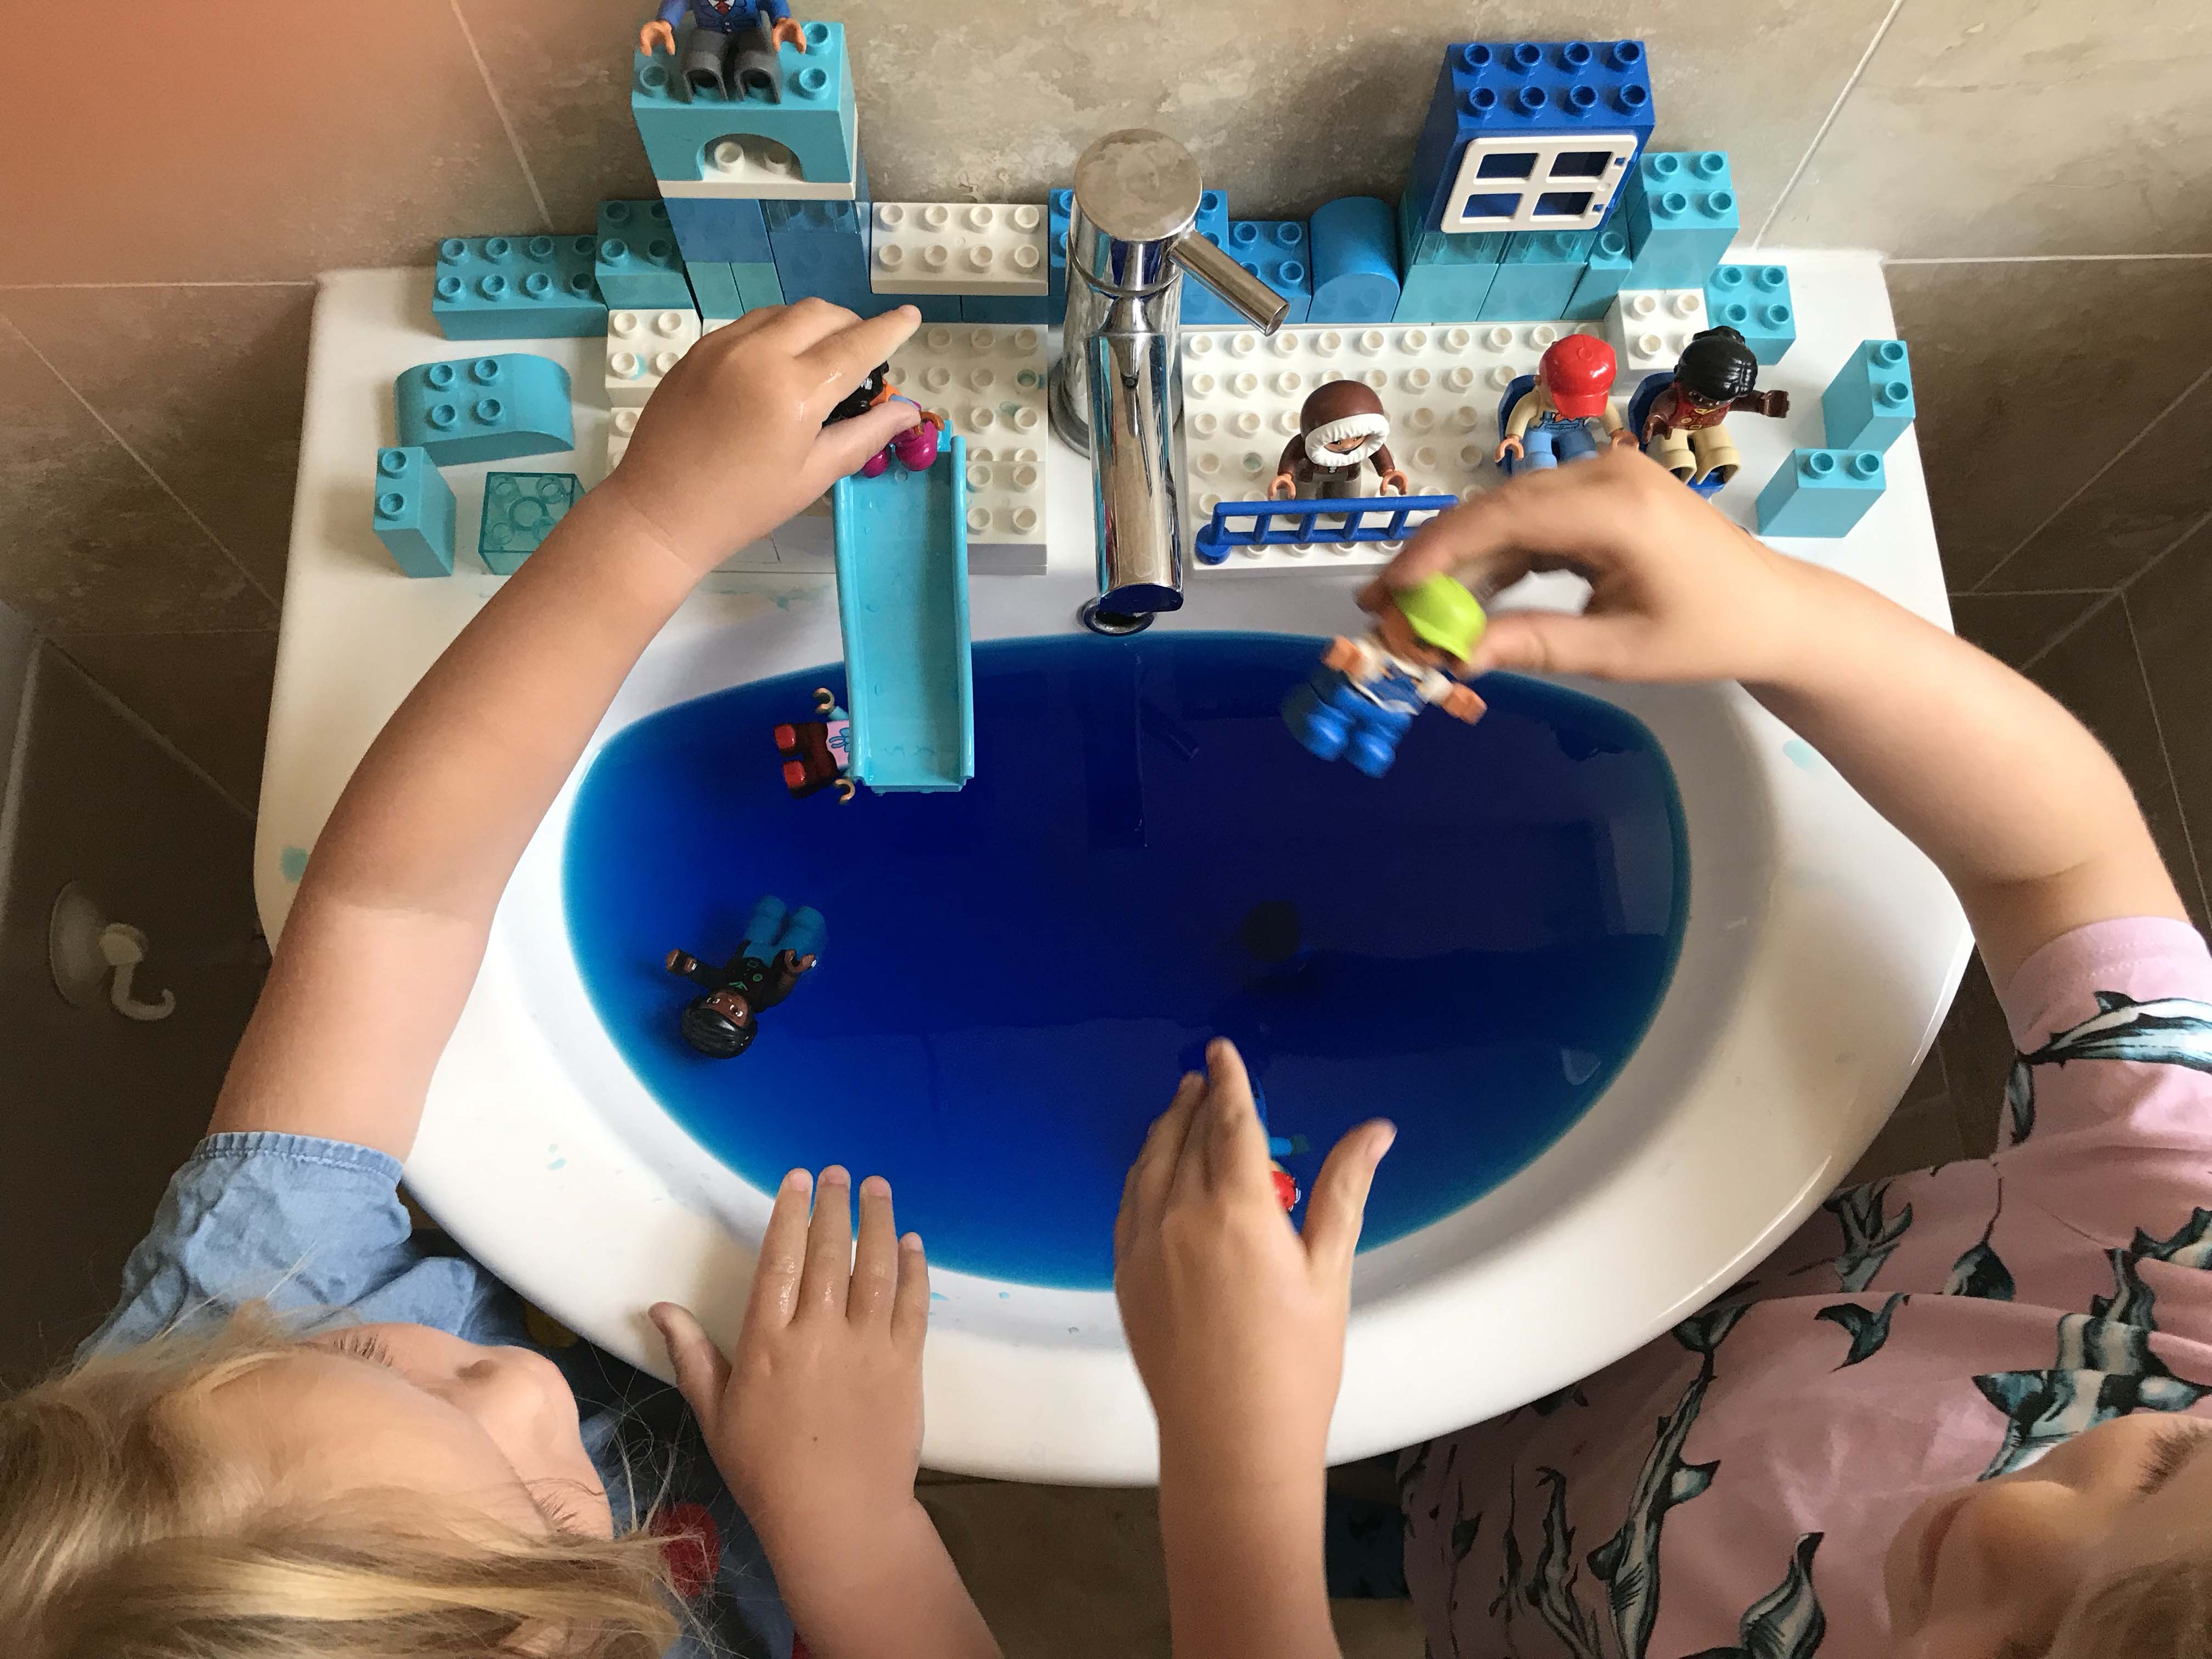 Sink play ideas for the Summer